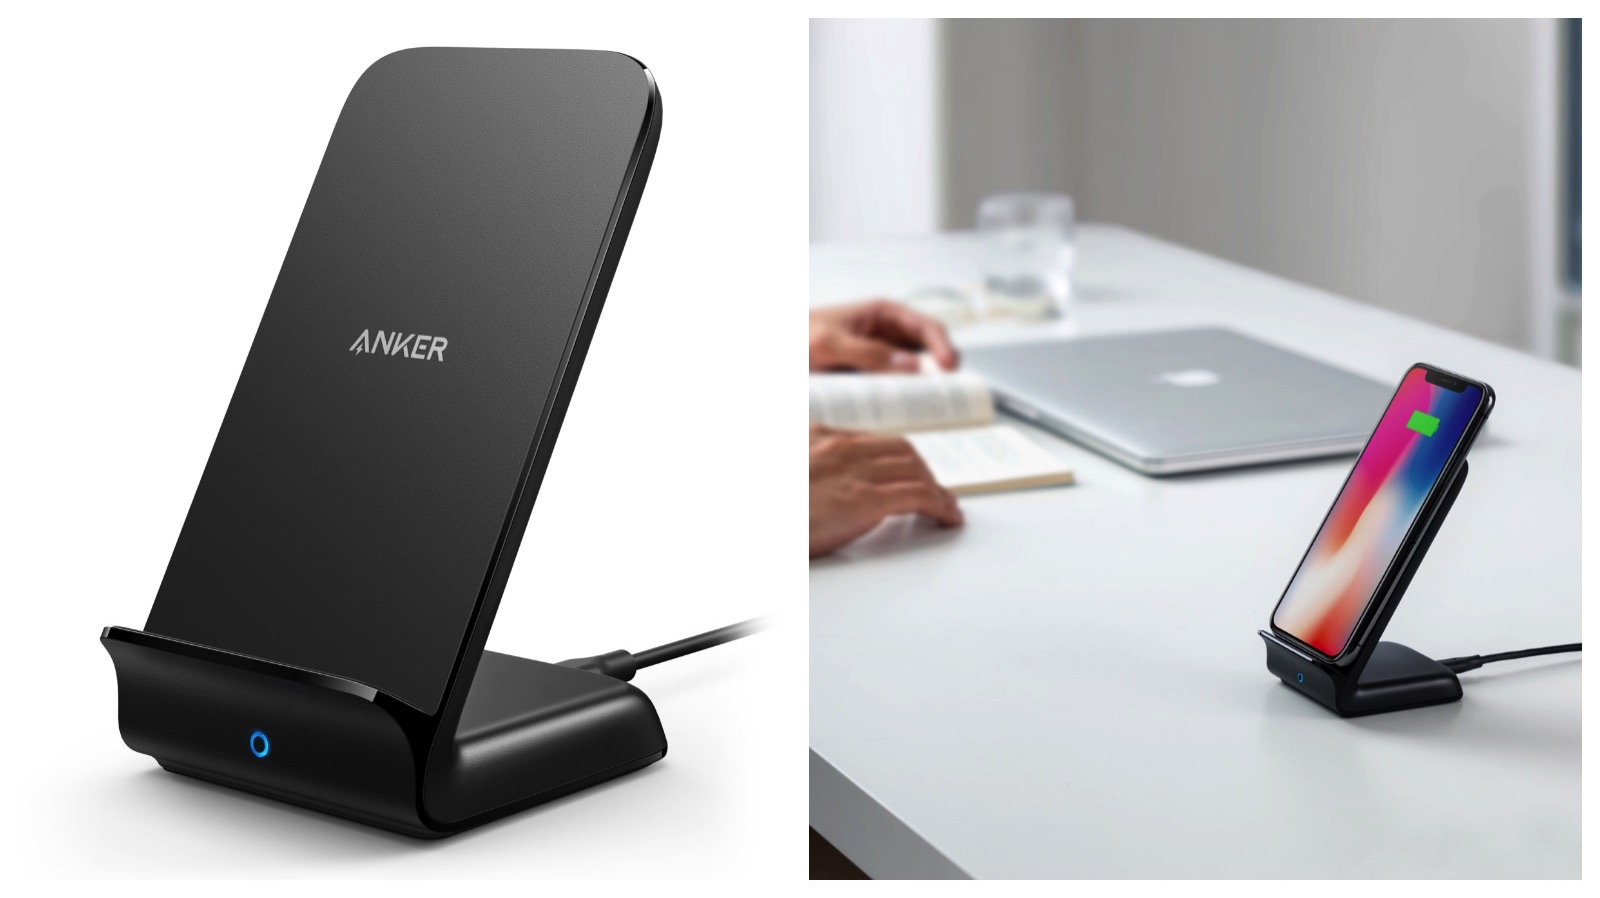 Anker PowerPort 7 5 charger